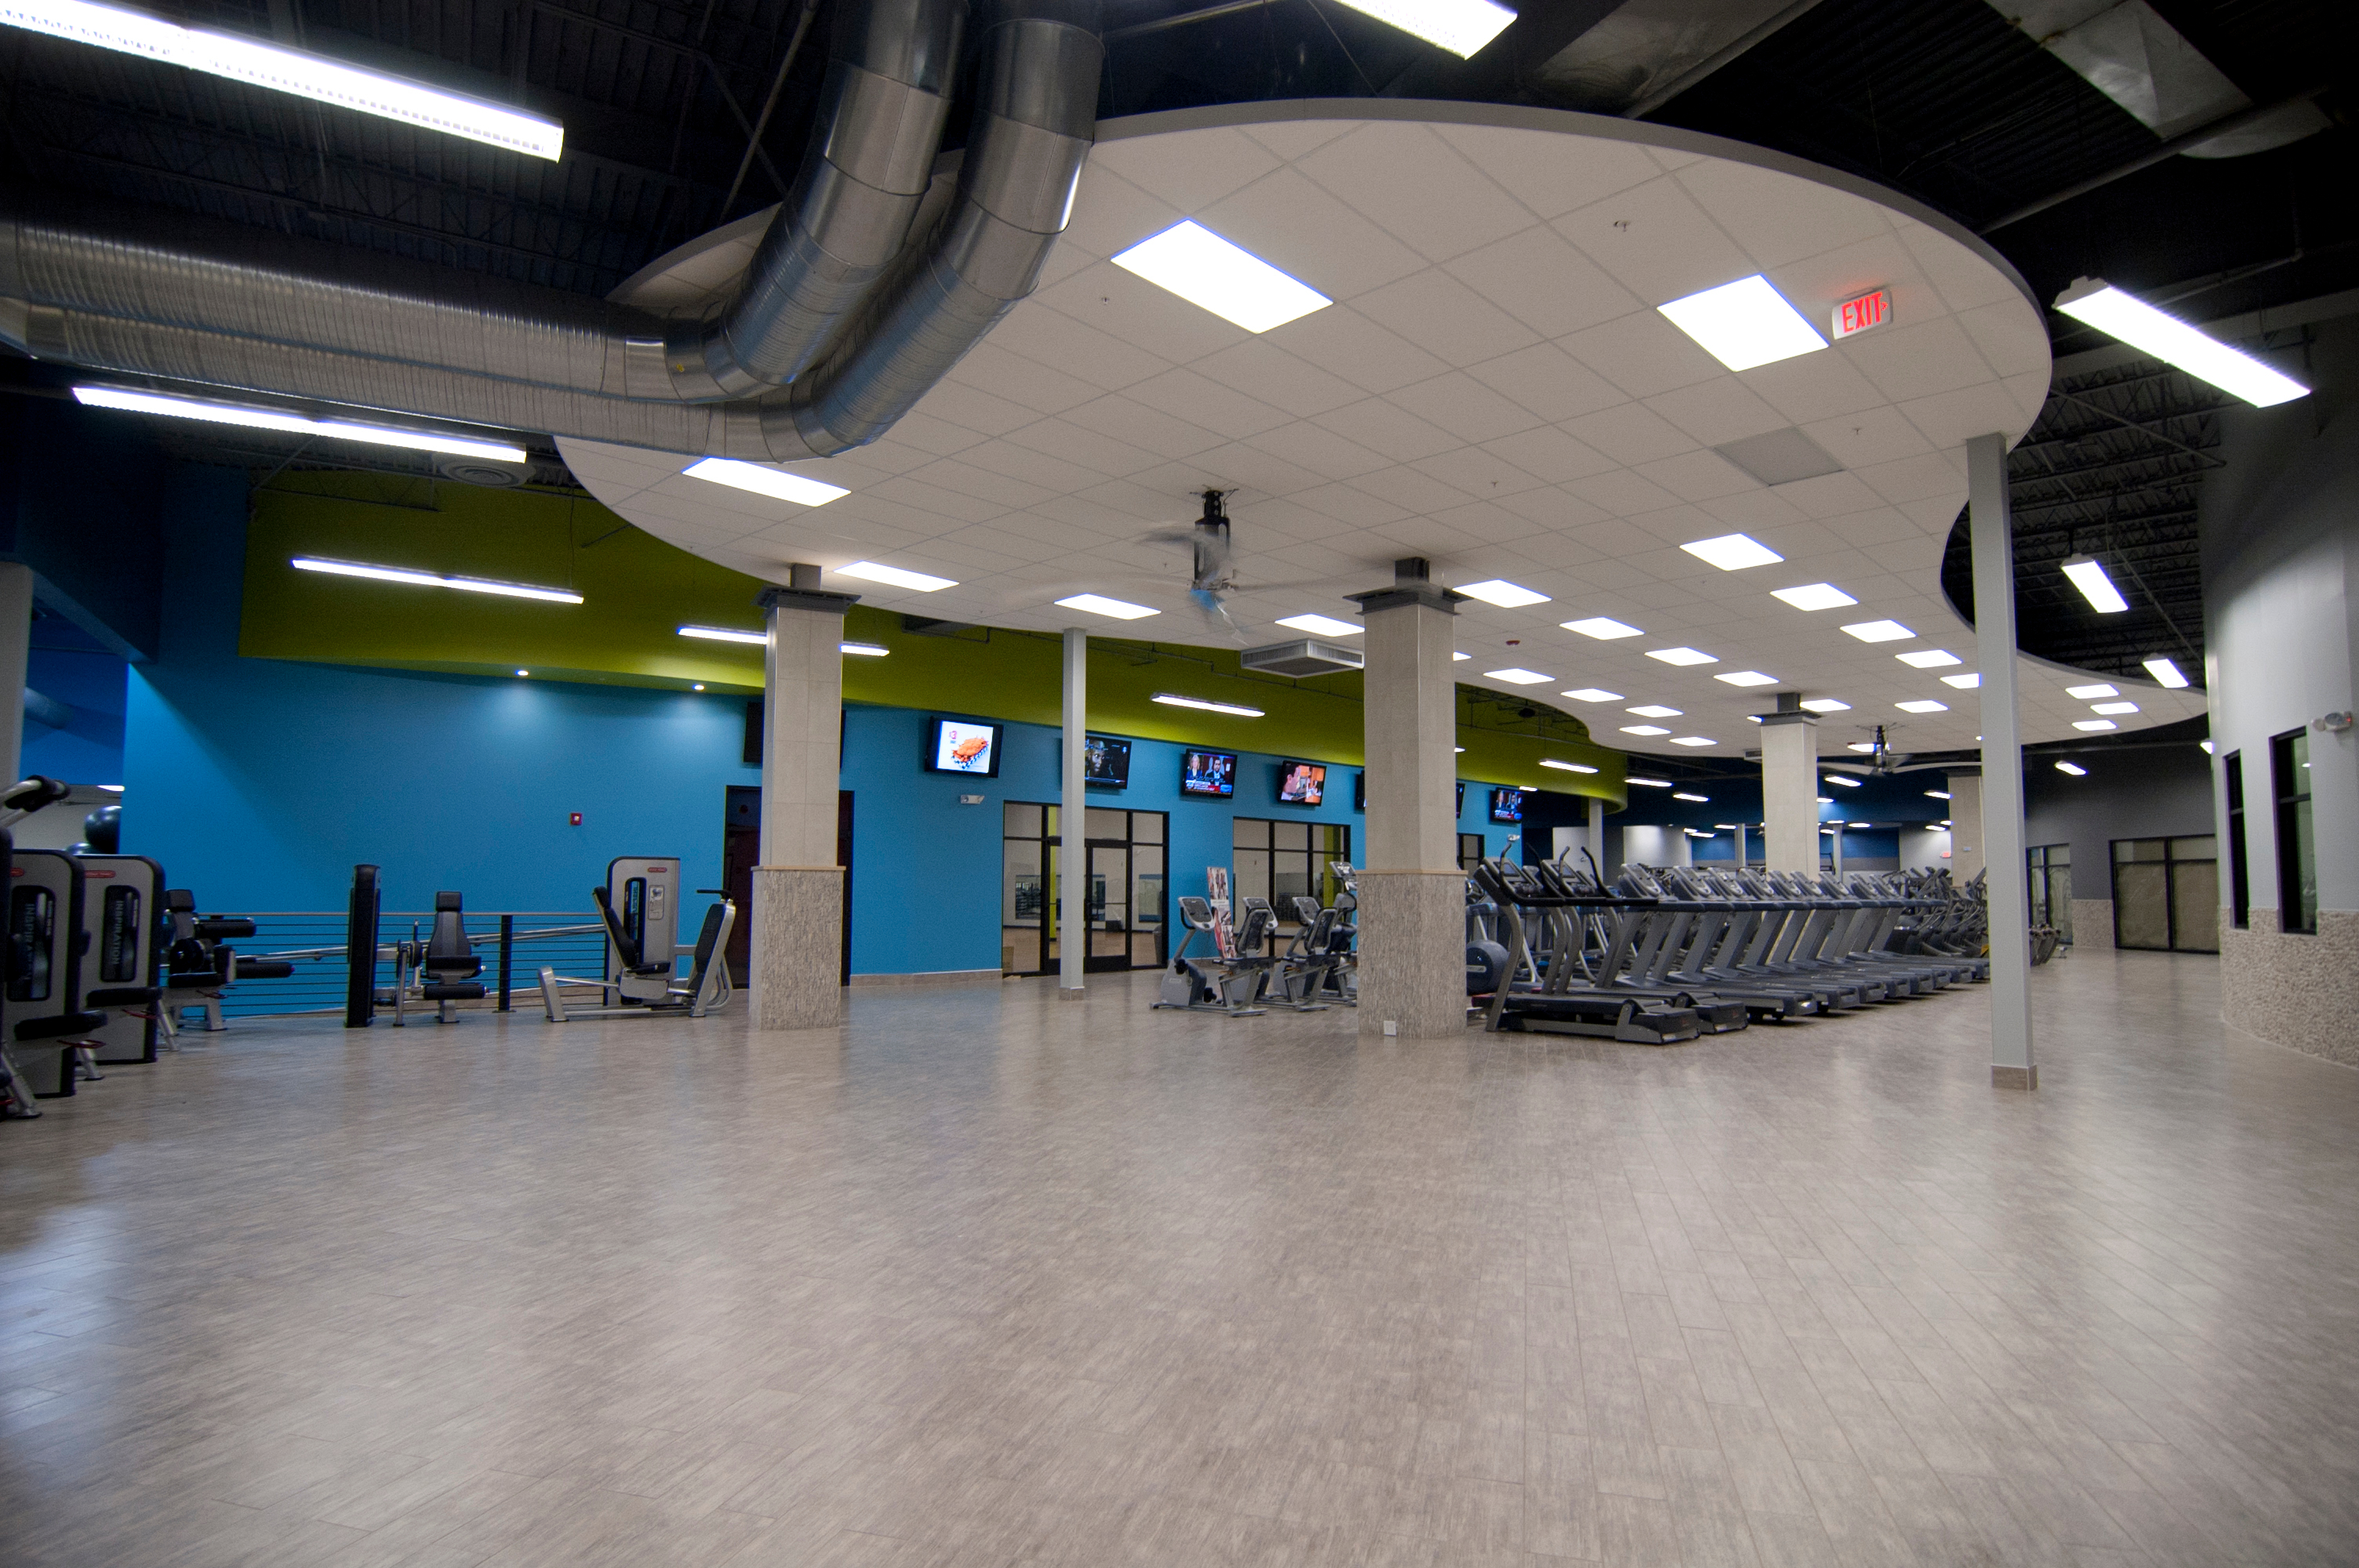 Onelife Fitness - Burke Gym in Burke, VA | Whitepages Onelife Fitness